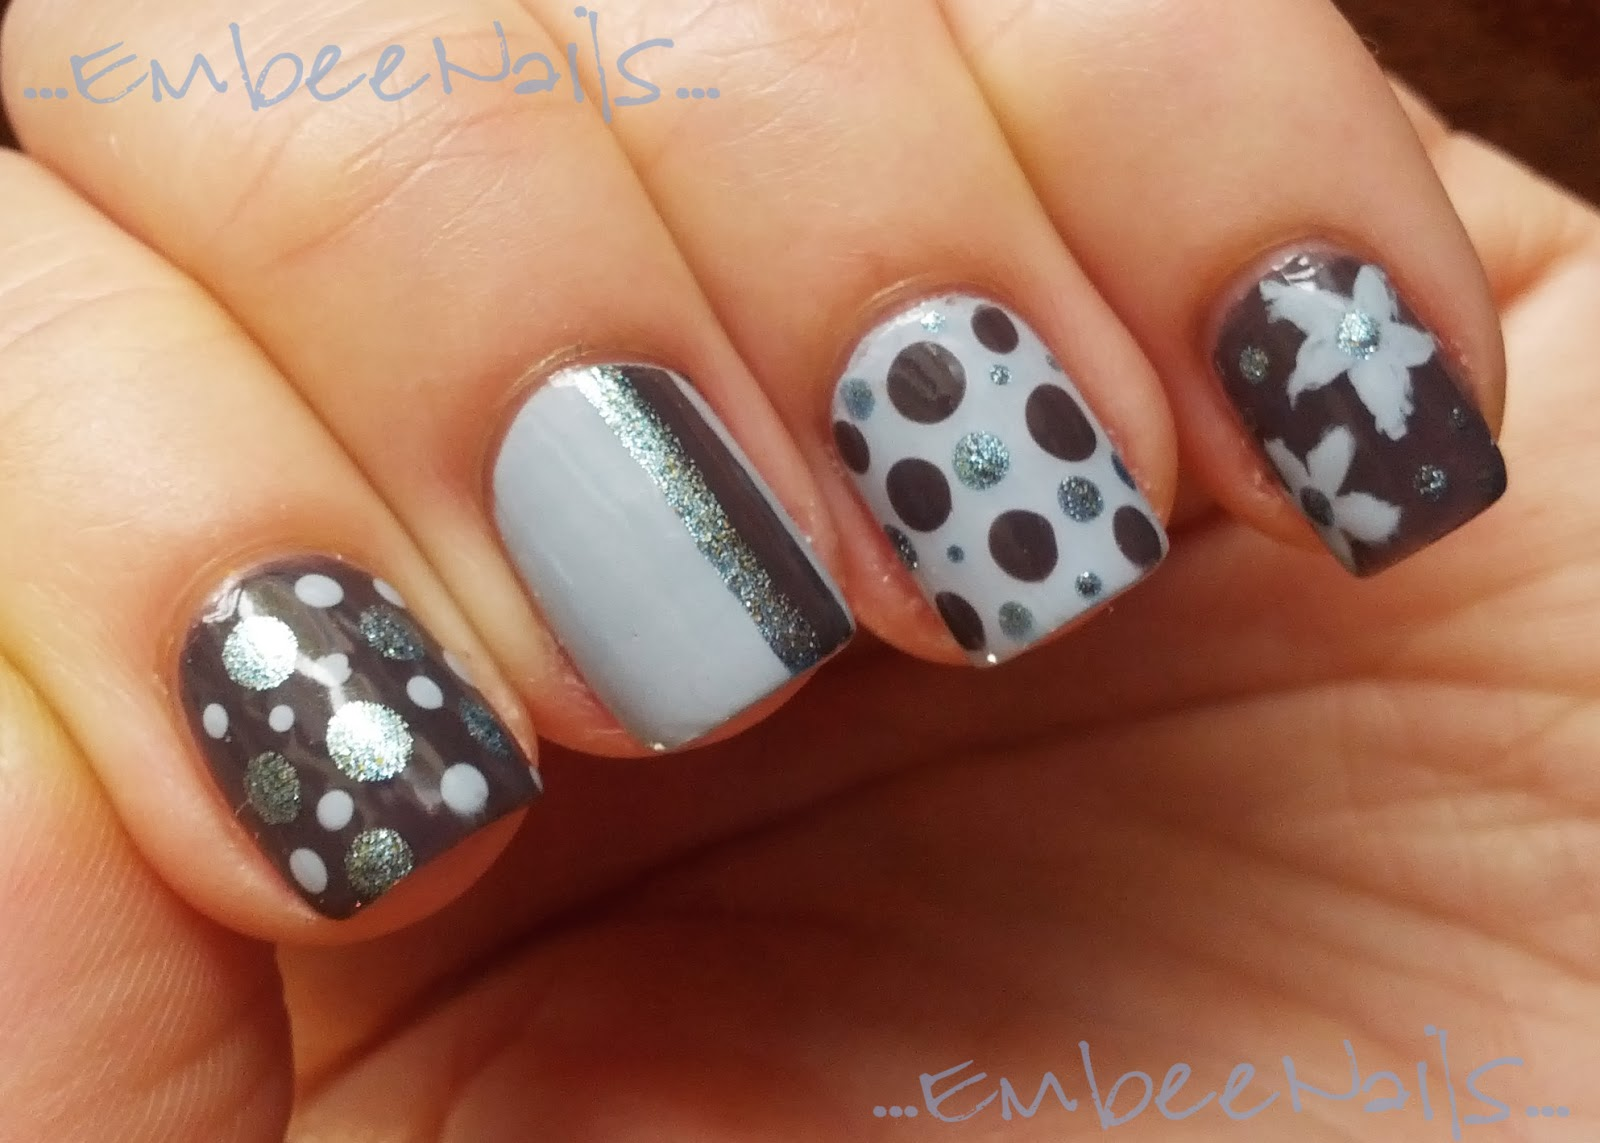 Embee Nails: Essie Smokin\' Hot + Zoya Kristen & Hazel